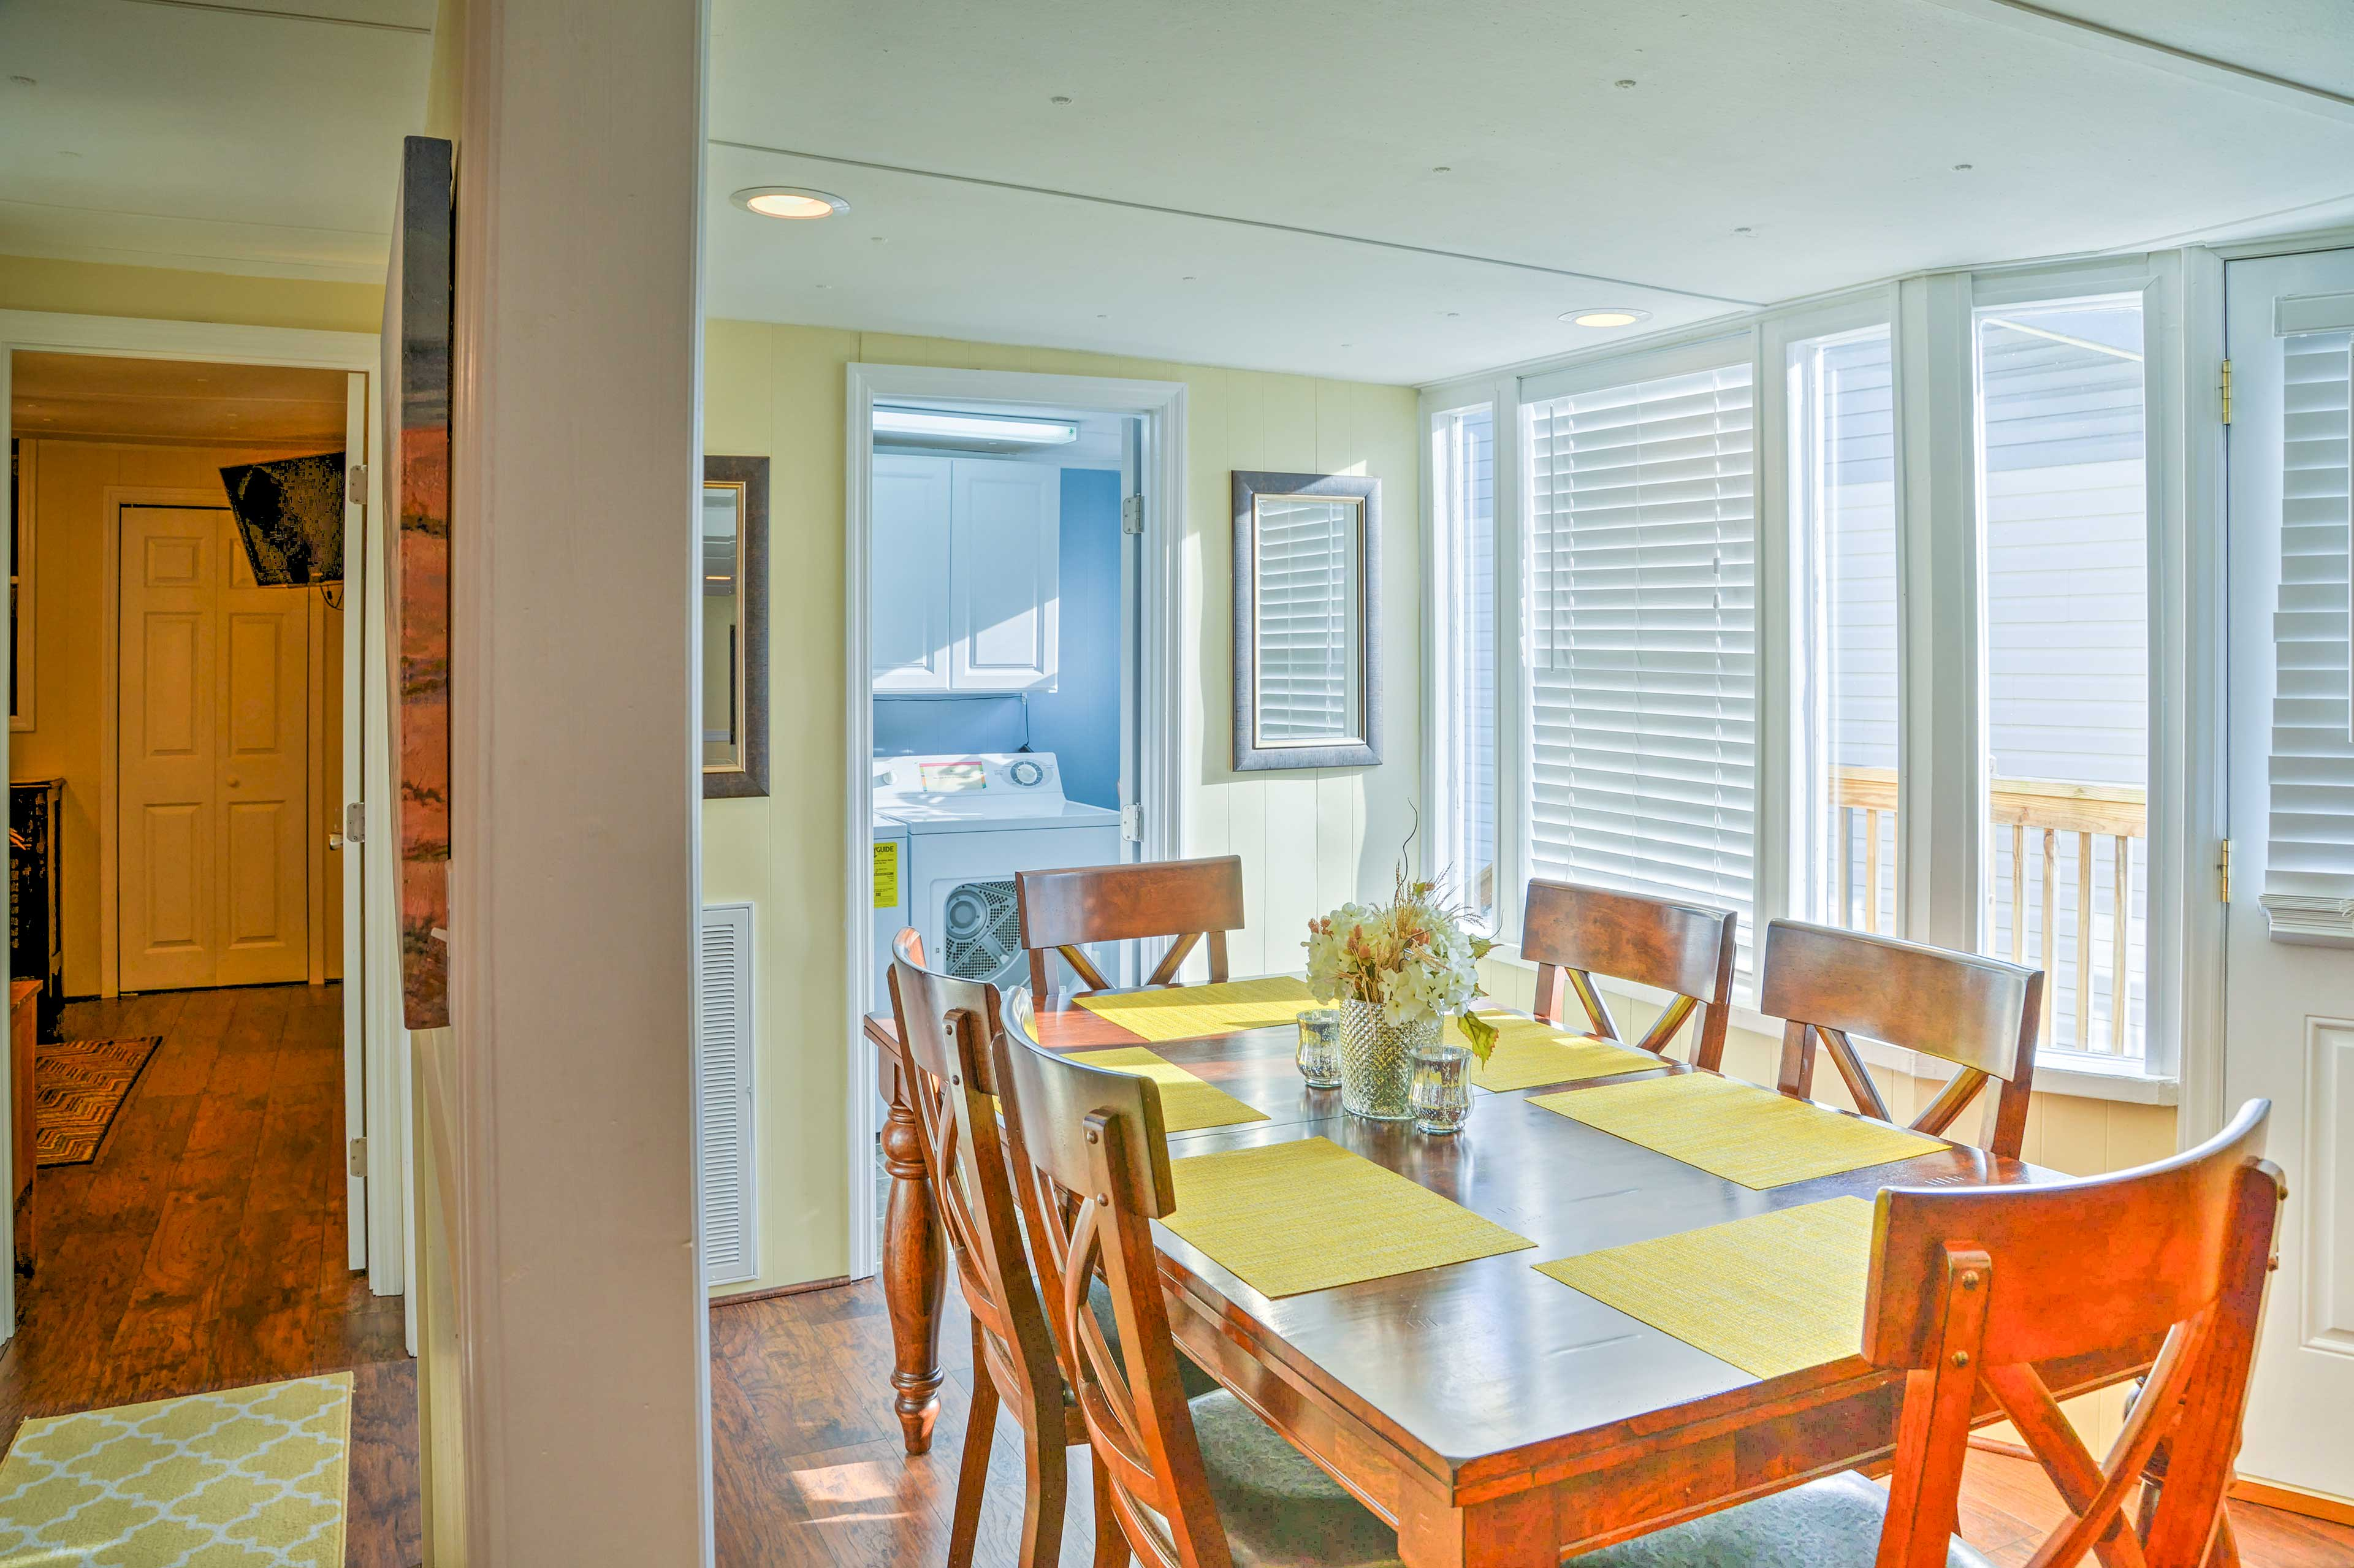 Home-cooked meals are waiting to be served at the dining table.